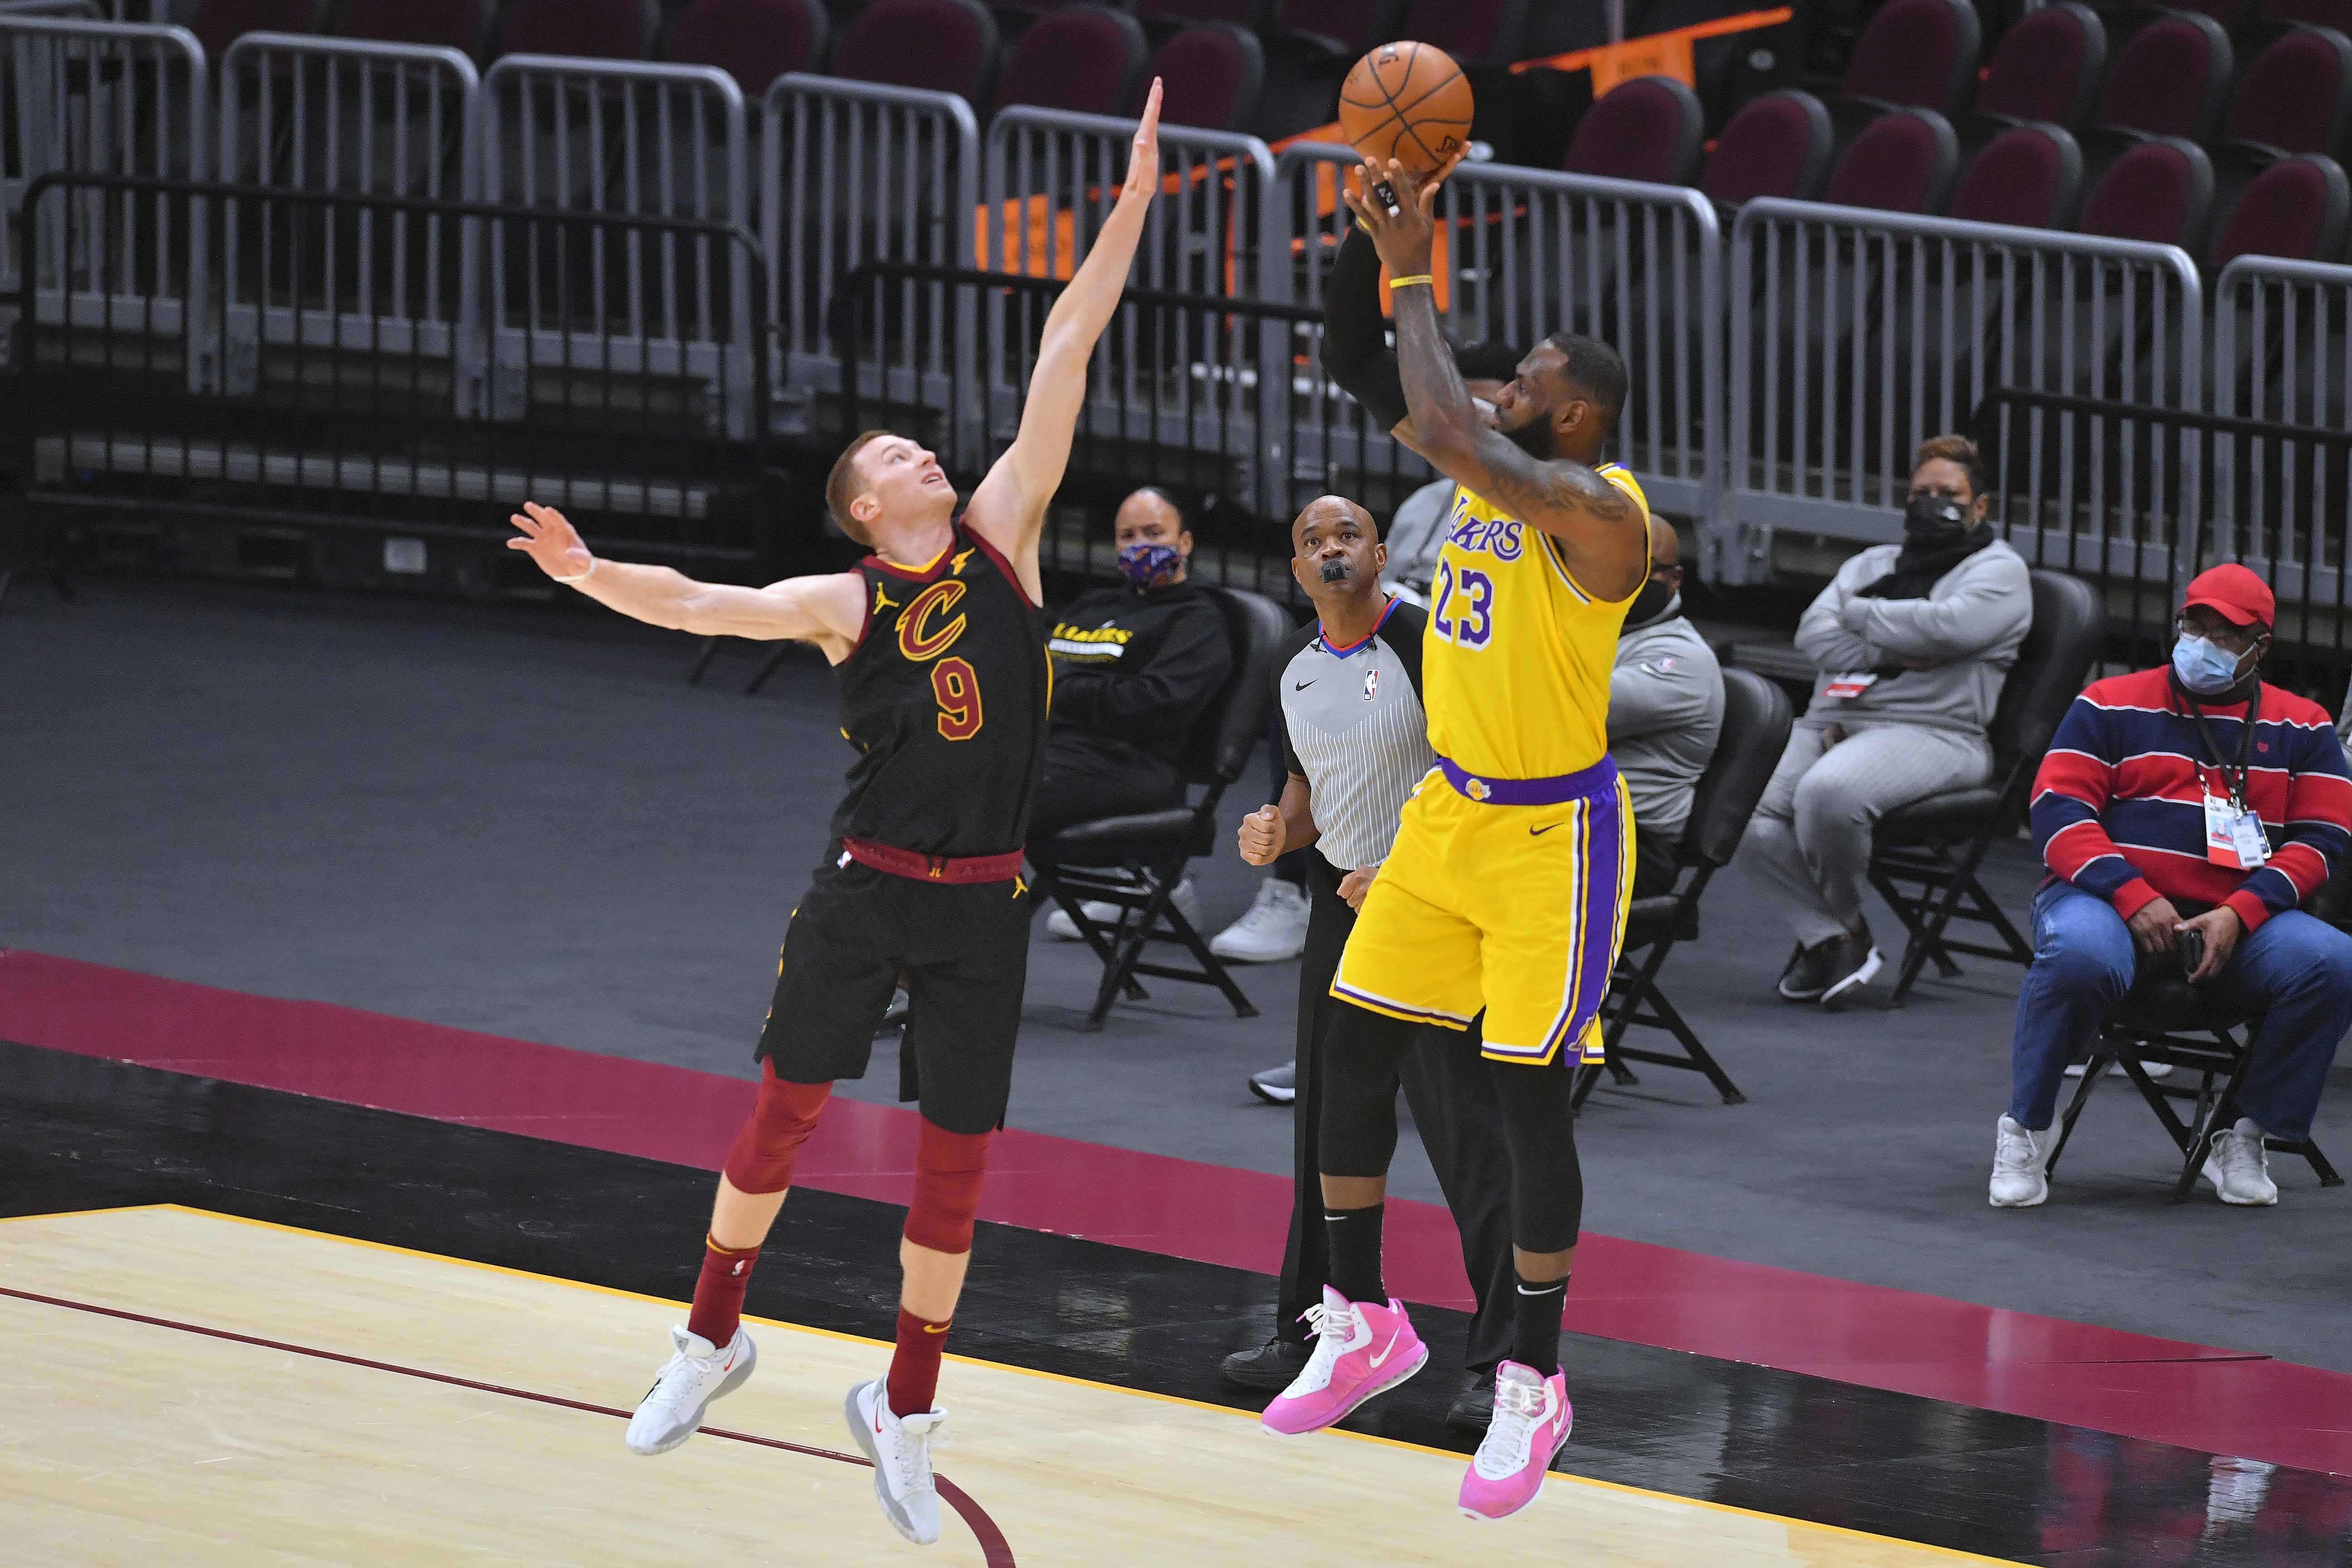 Lebron James is one of the biggest sports stars in the world, and just left one of his endorsment deals to sign with their rival.